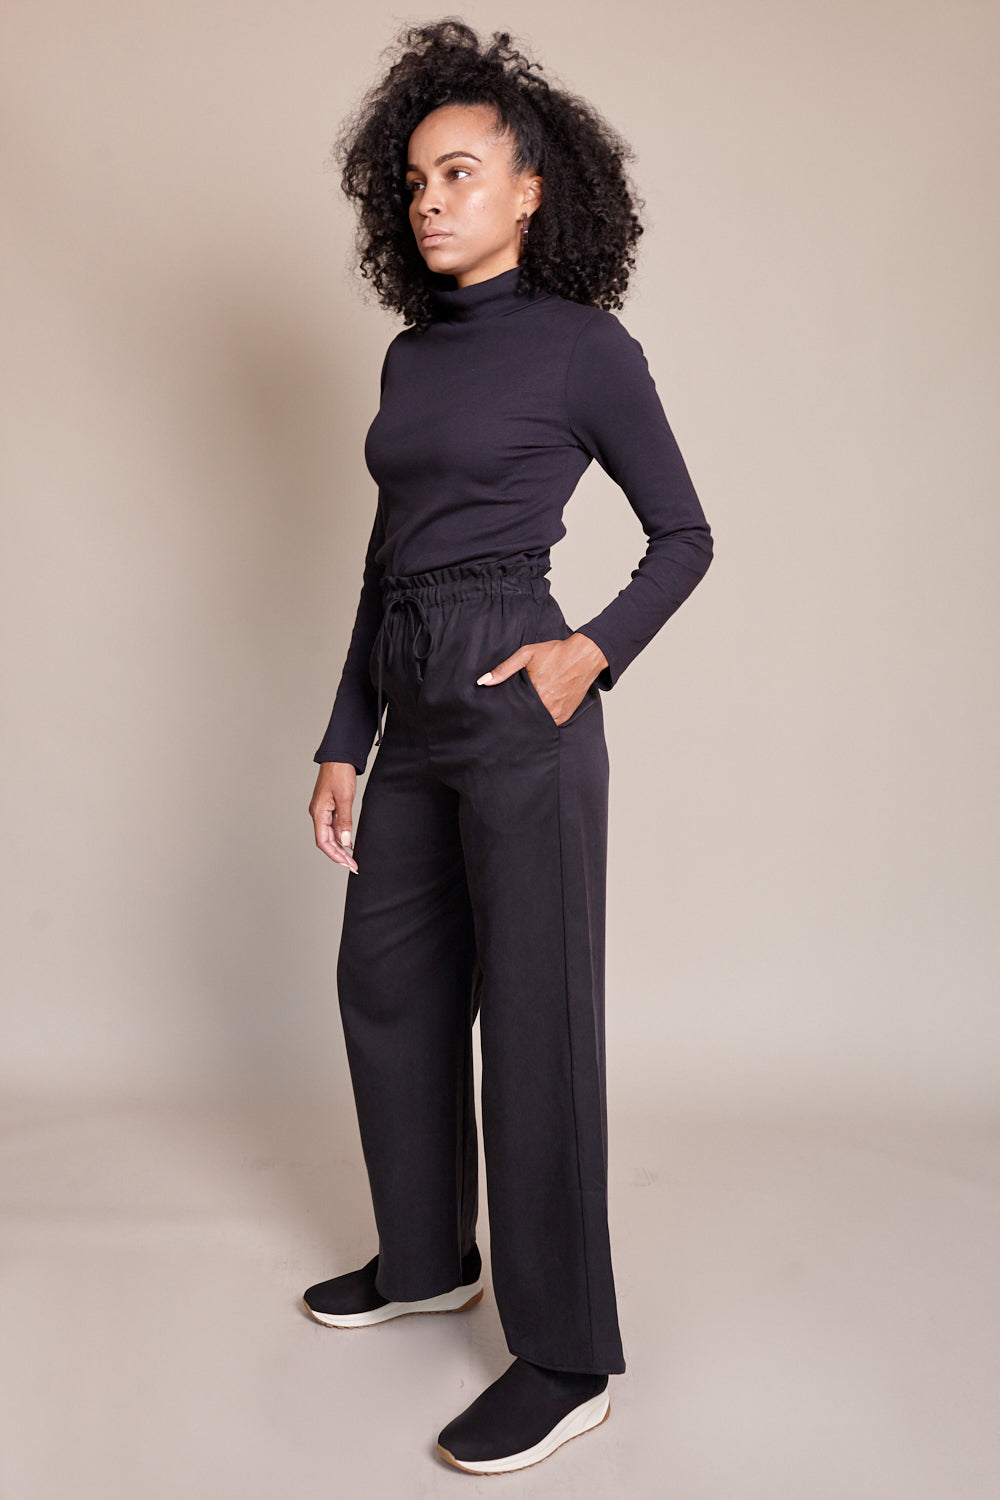 Shaina Mote Classic Turtleneck in Onyx - Vert & Vogue